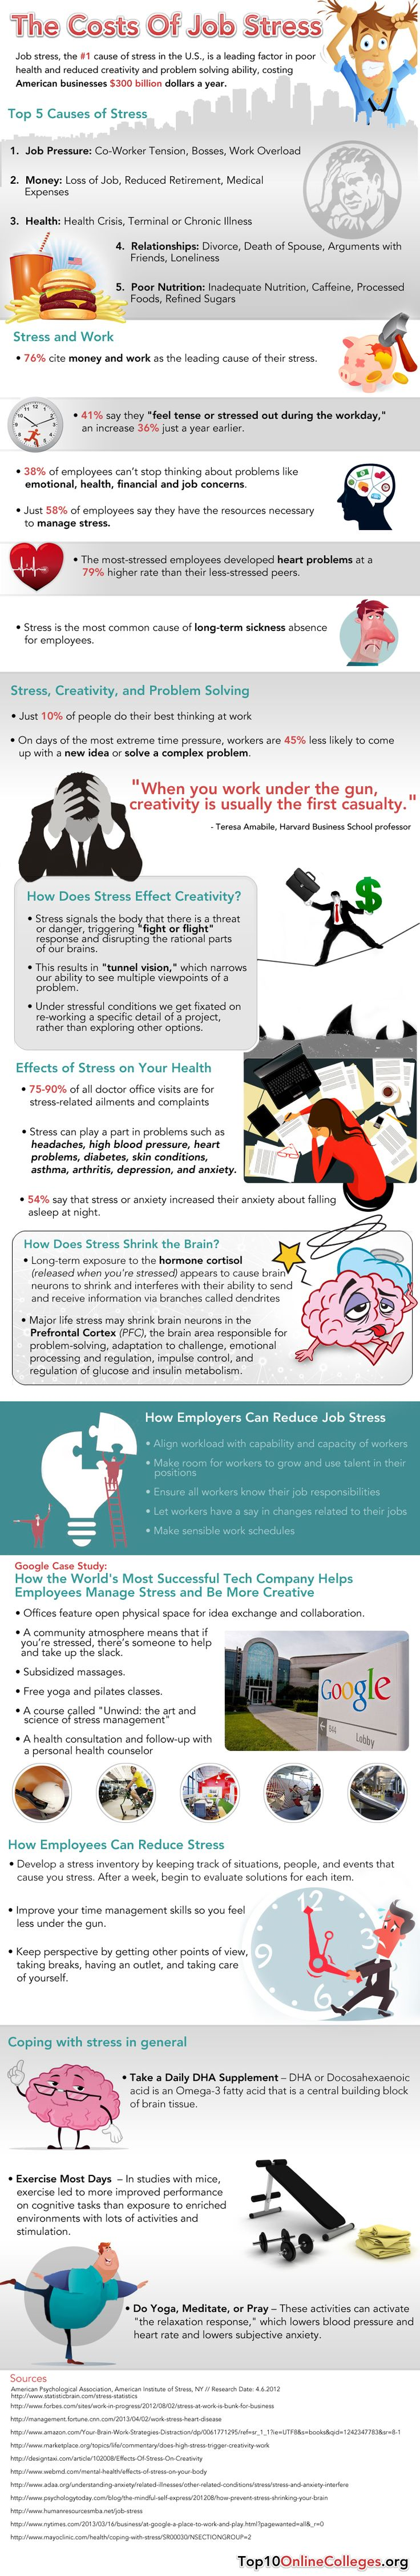 The Costs of Job Stress